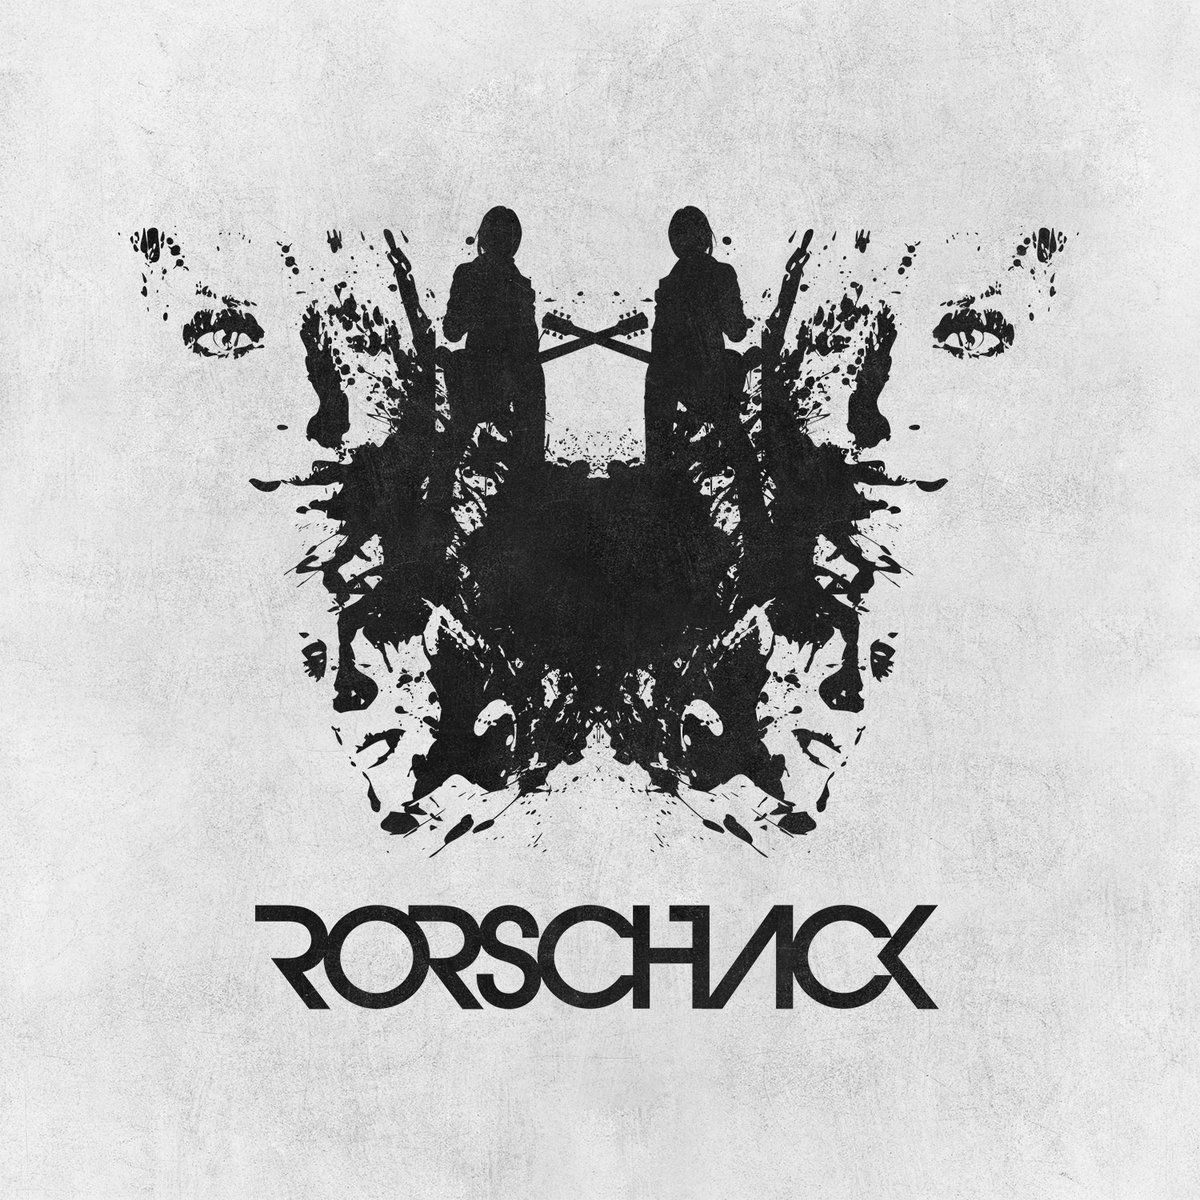 Rorschack - Clear Your Mind of Question @ 'All of the Above' album (bass, electronic)